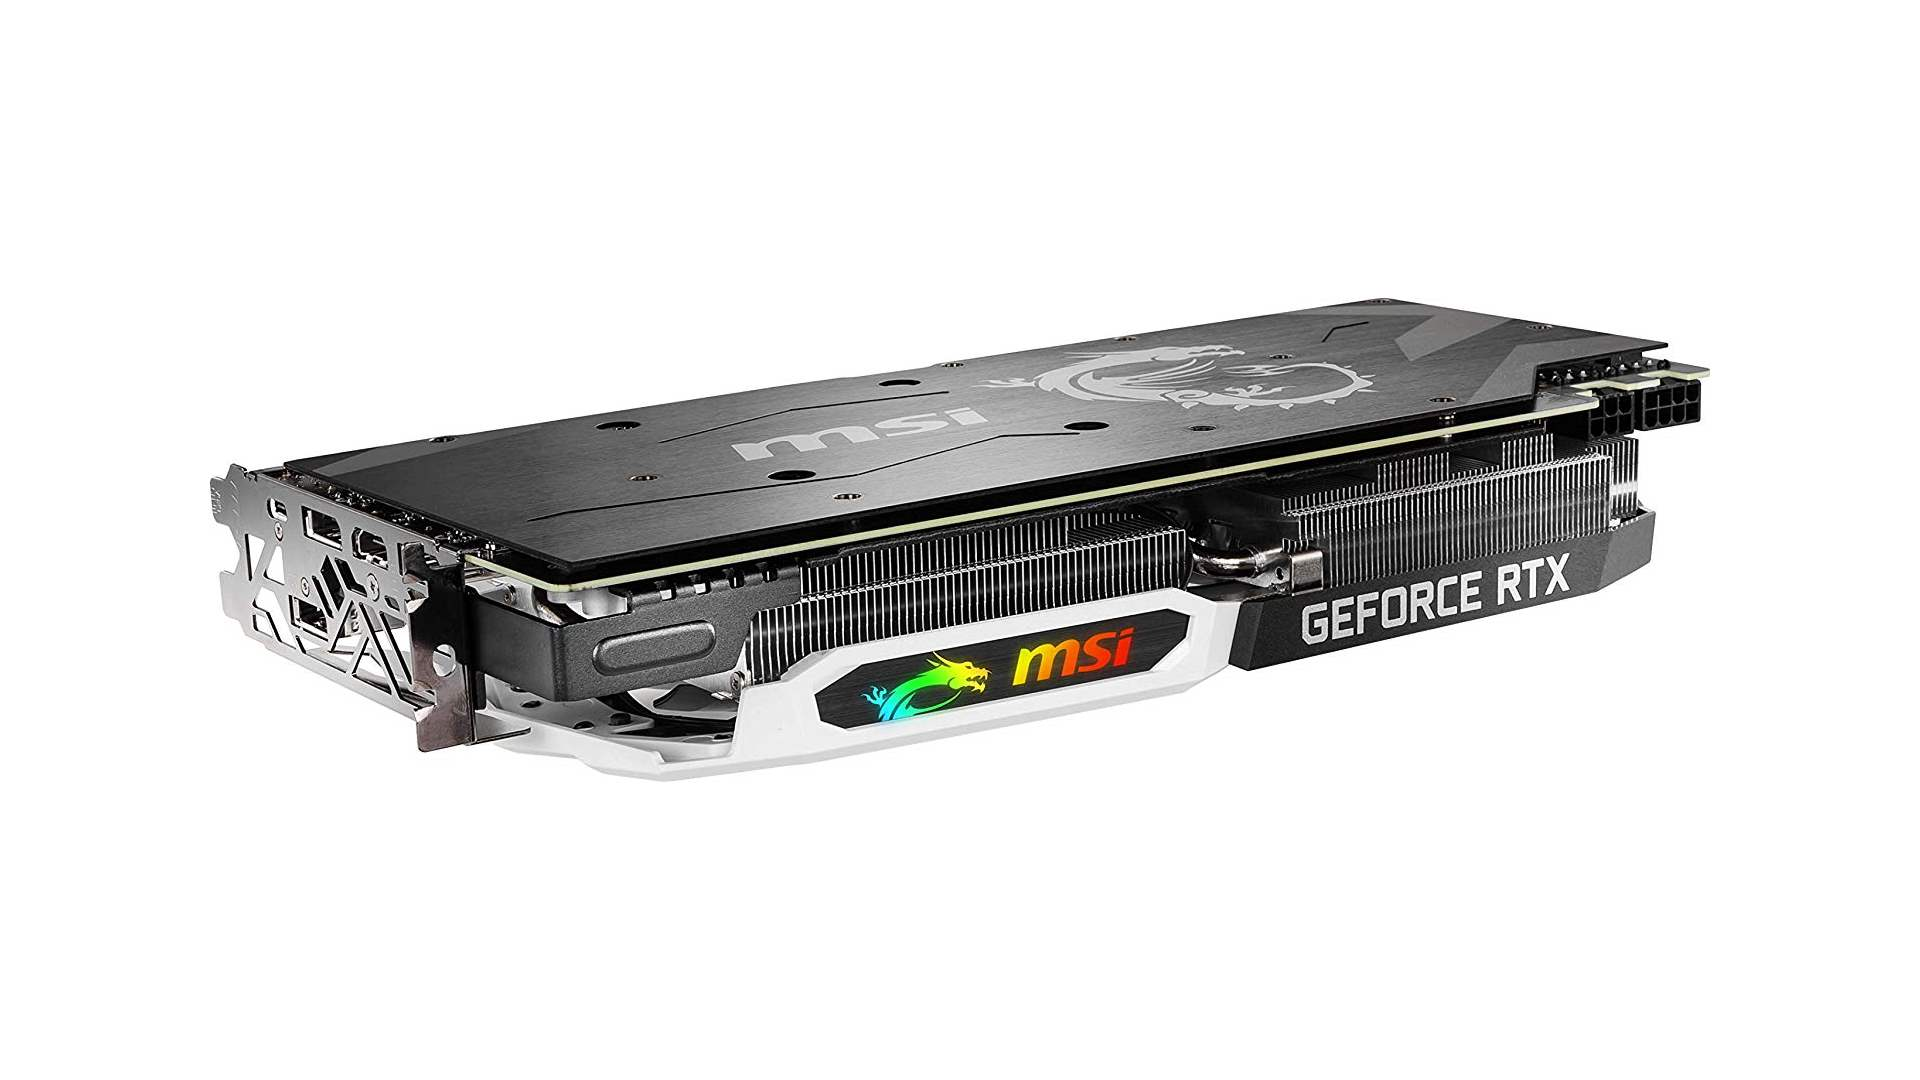 MSI RTX 2070 Armor 8G review: the best-value Nvidia Turing GPU so